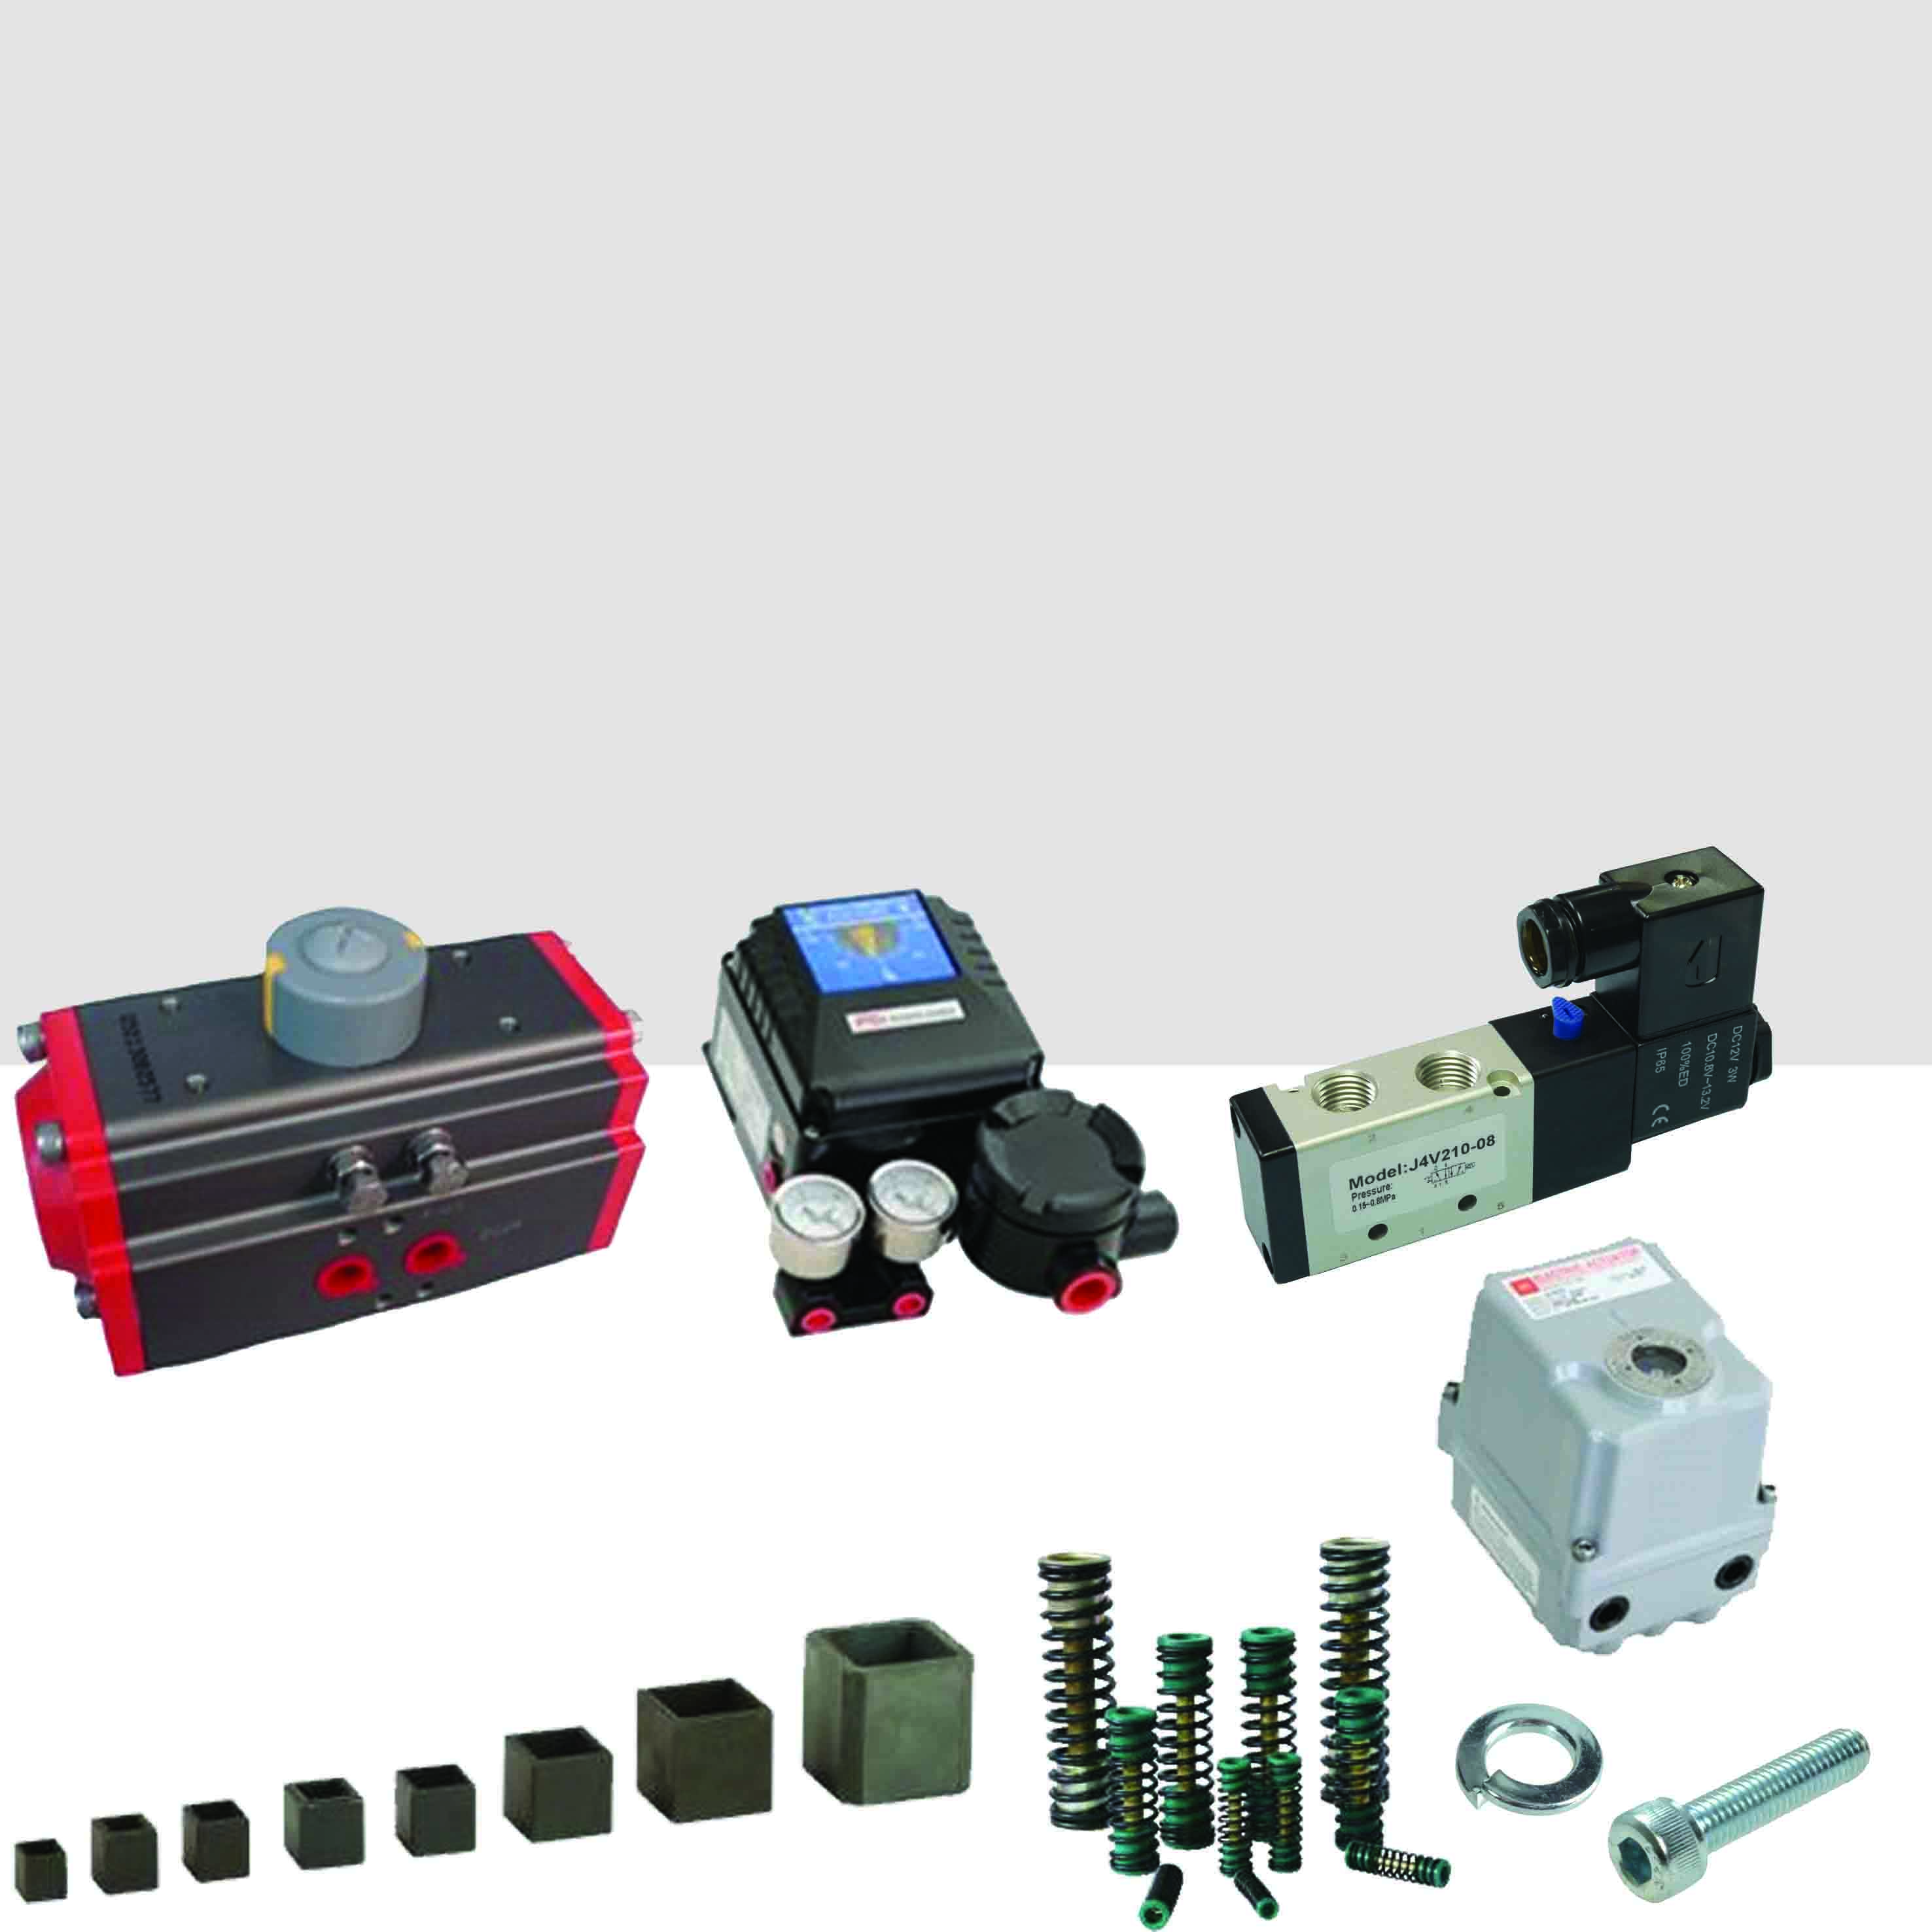 Actuators & Components